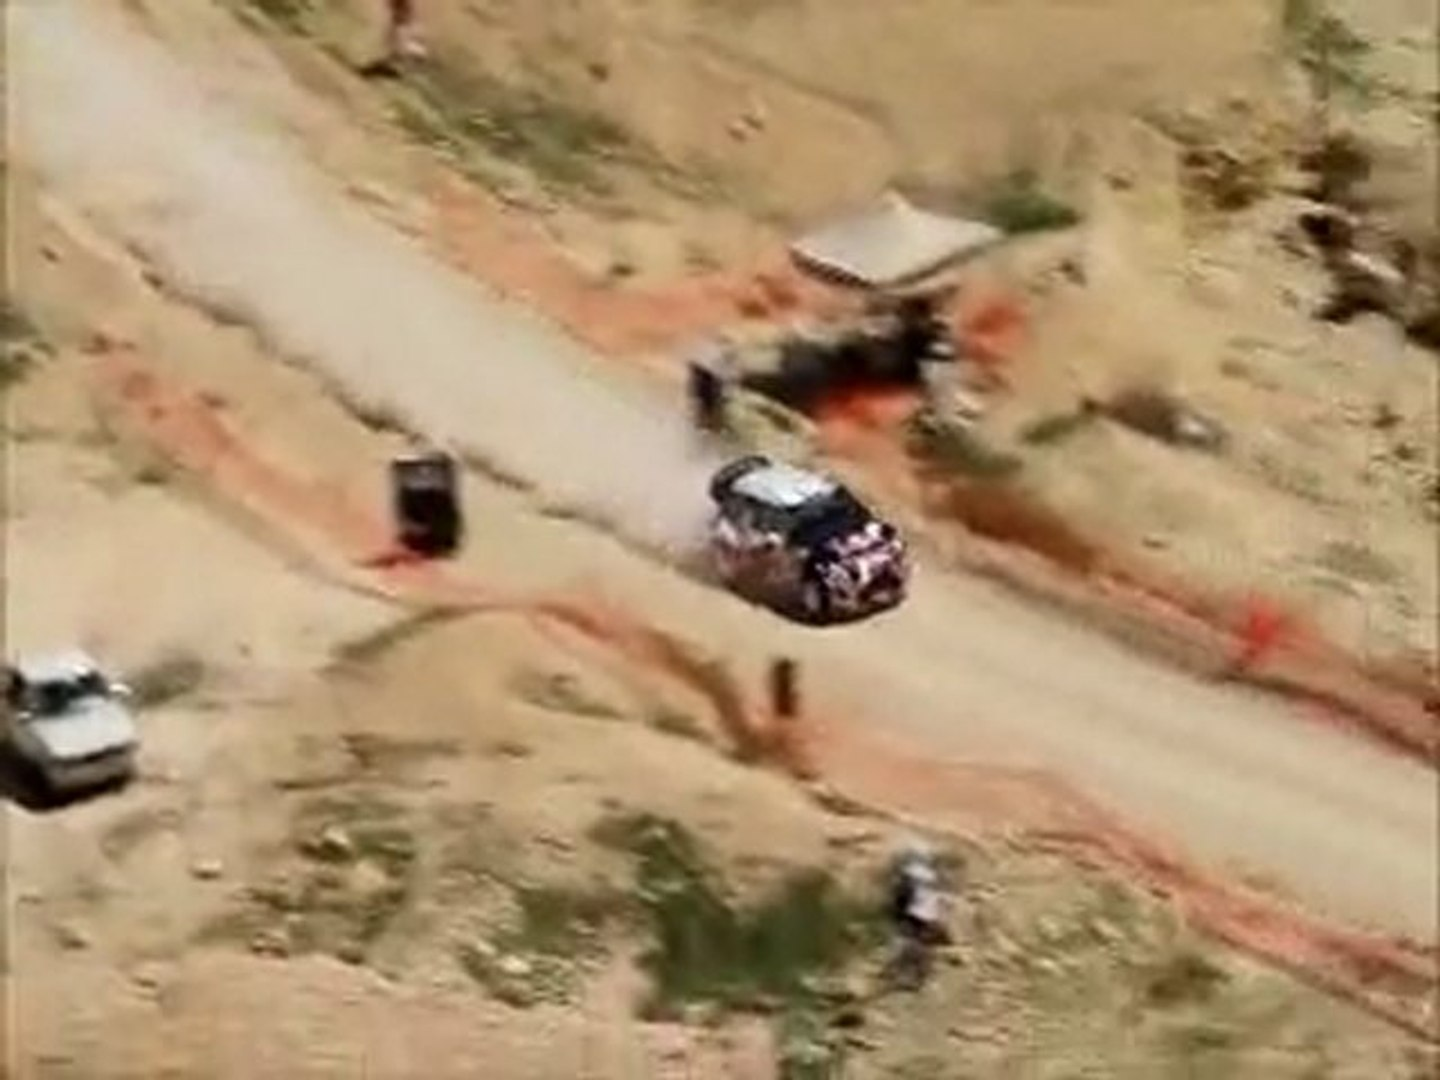 WRC 2011 Jordan rally 2011 Ogier Video Jordan 2011